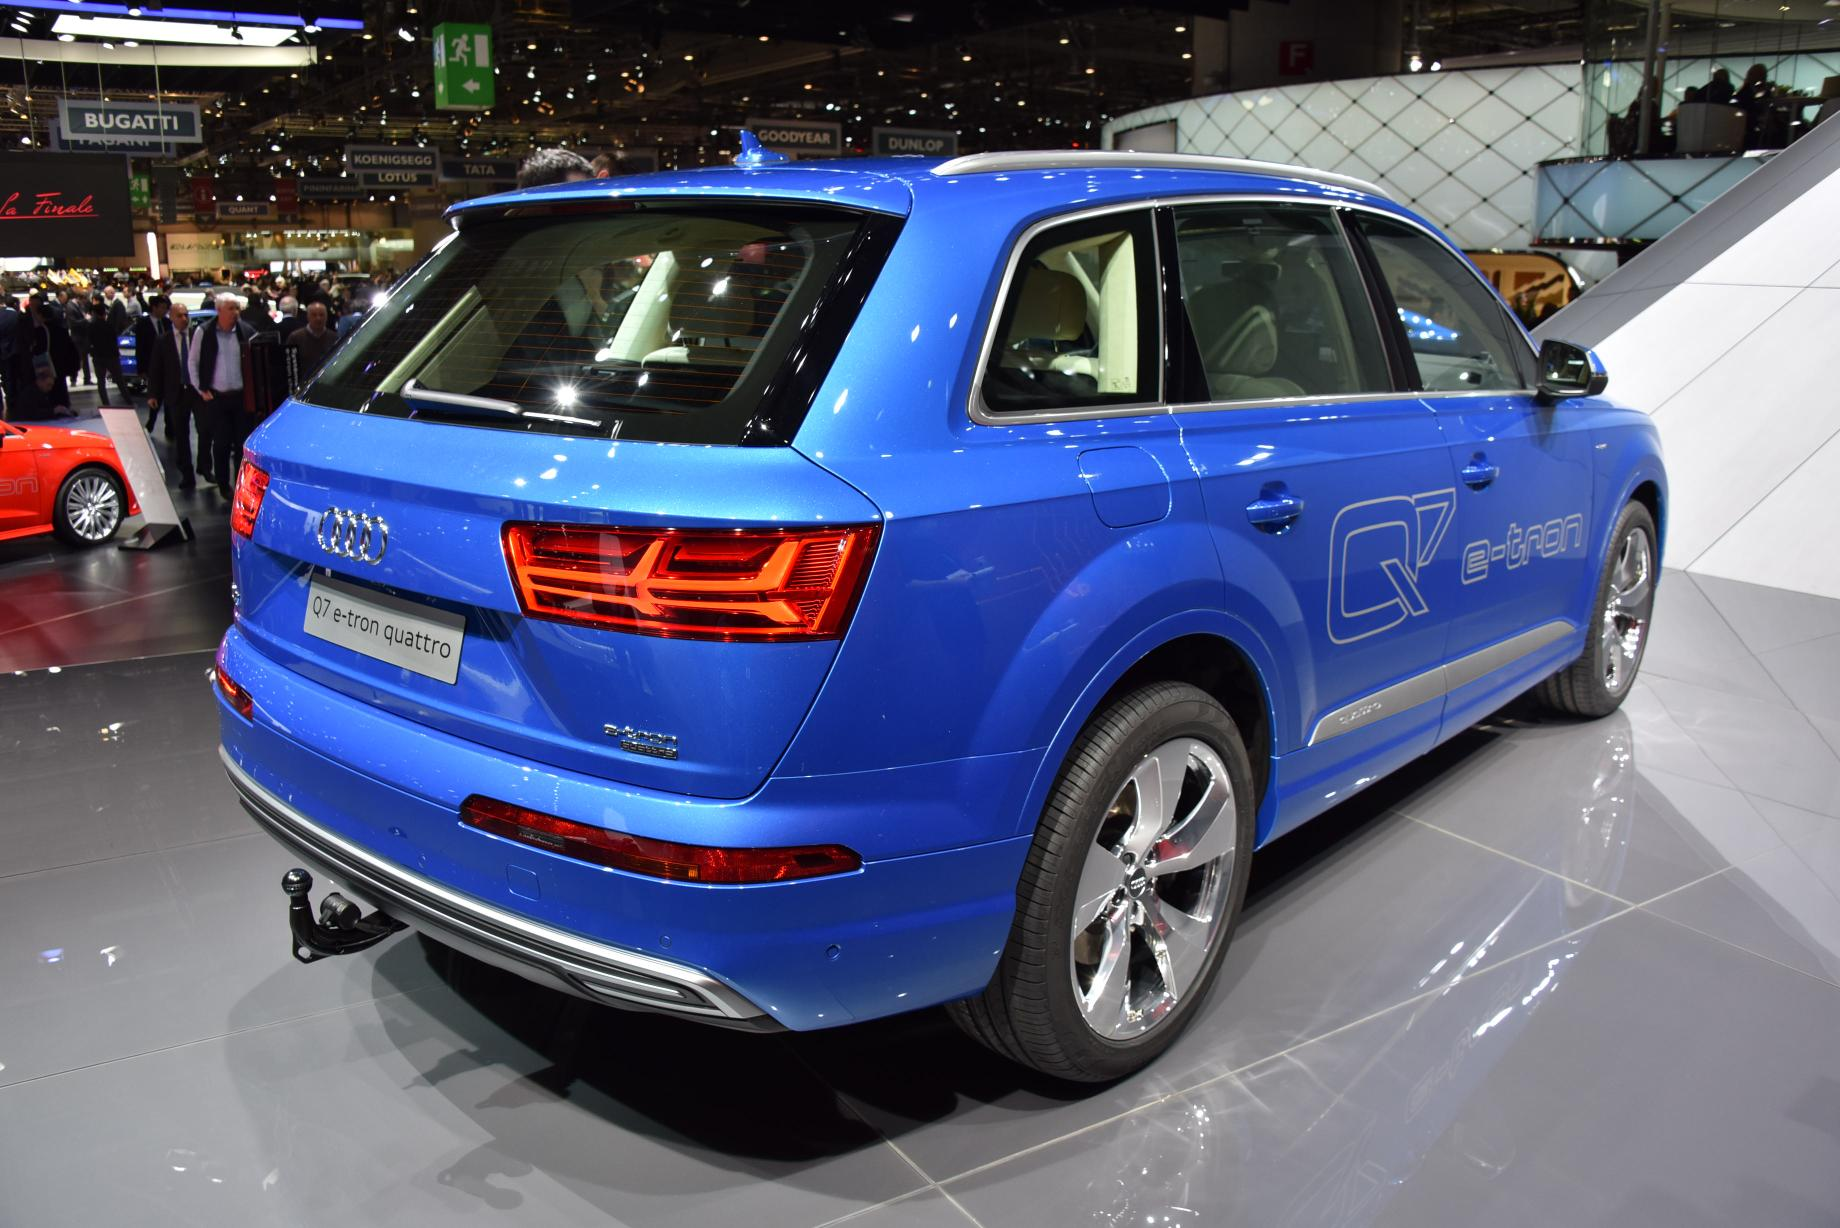 2016 audi q7 e tron diesel phev is the world 39 s most efficient premium suv autoevolution. Black Bedroom Furniture Sets. Home Design Ideas